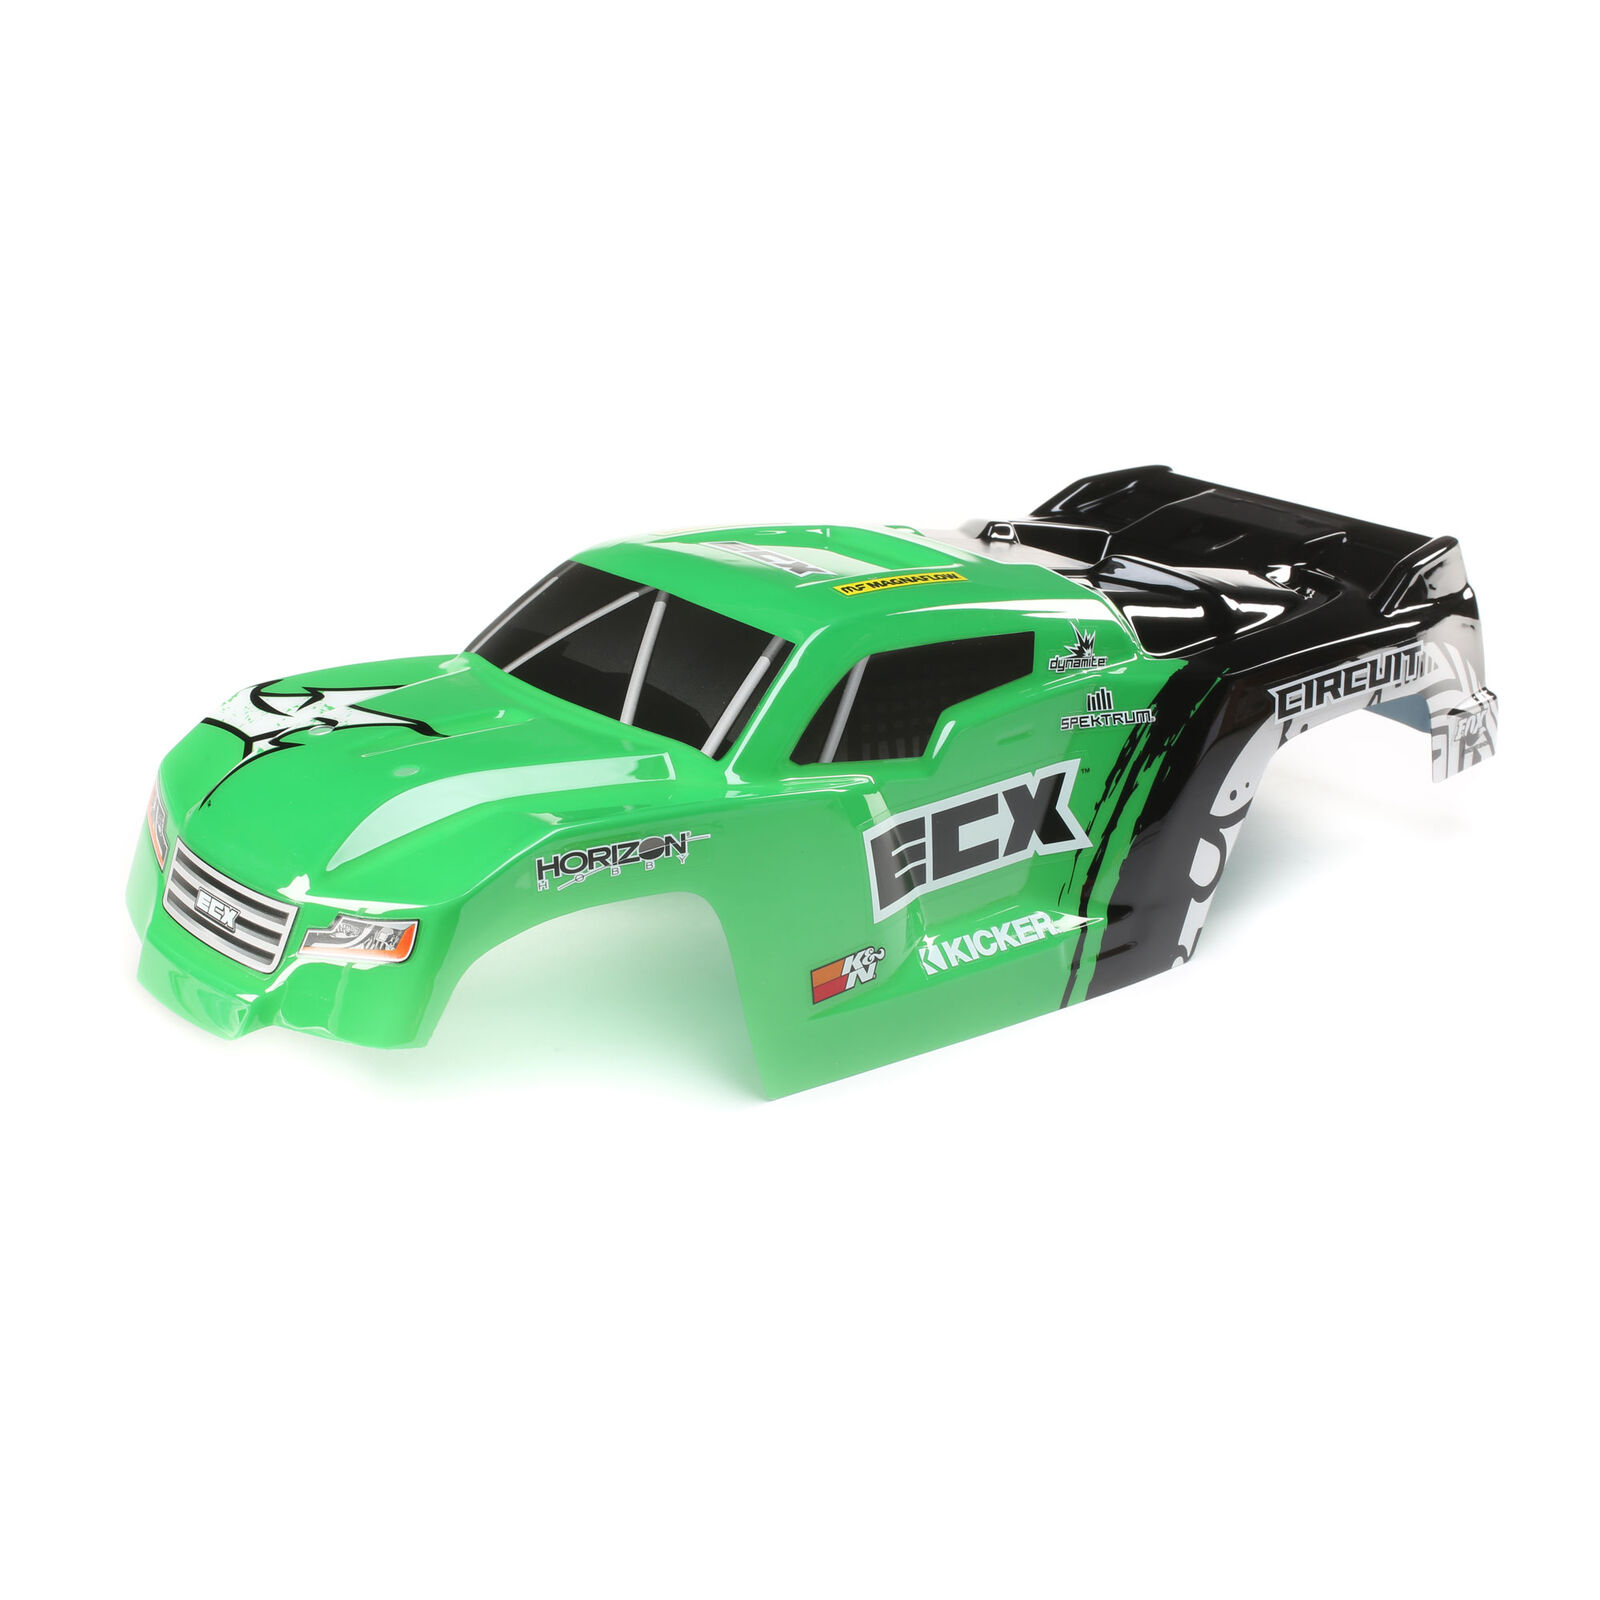 1/10 Painted Body, Green: 2WD Circuit